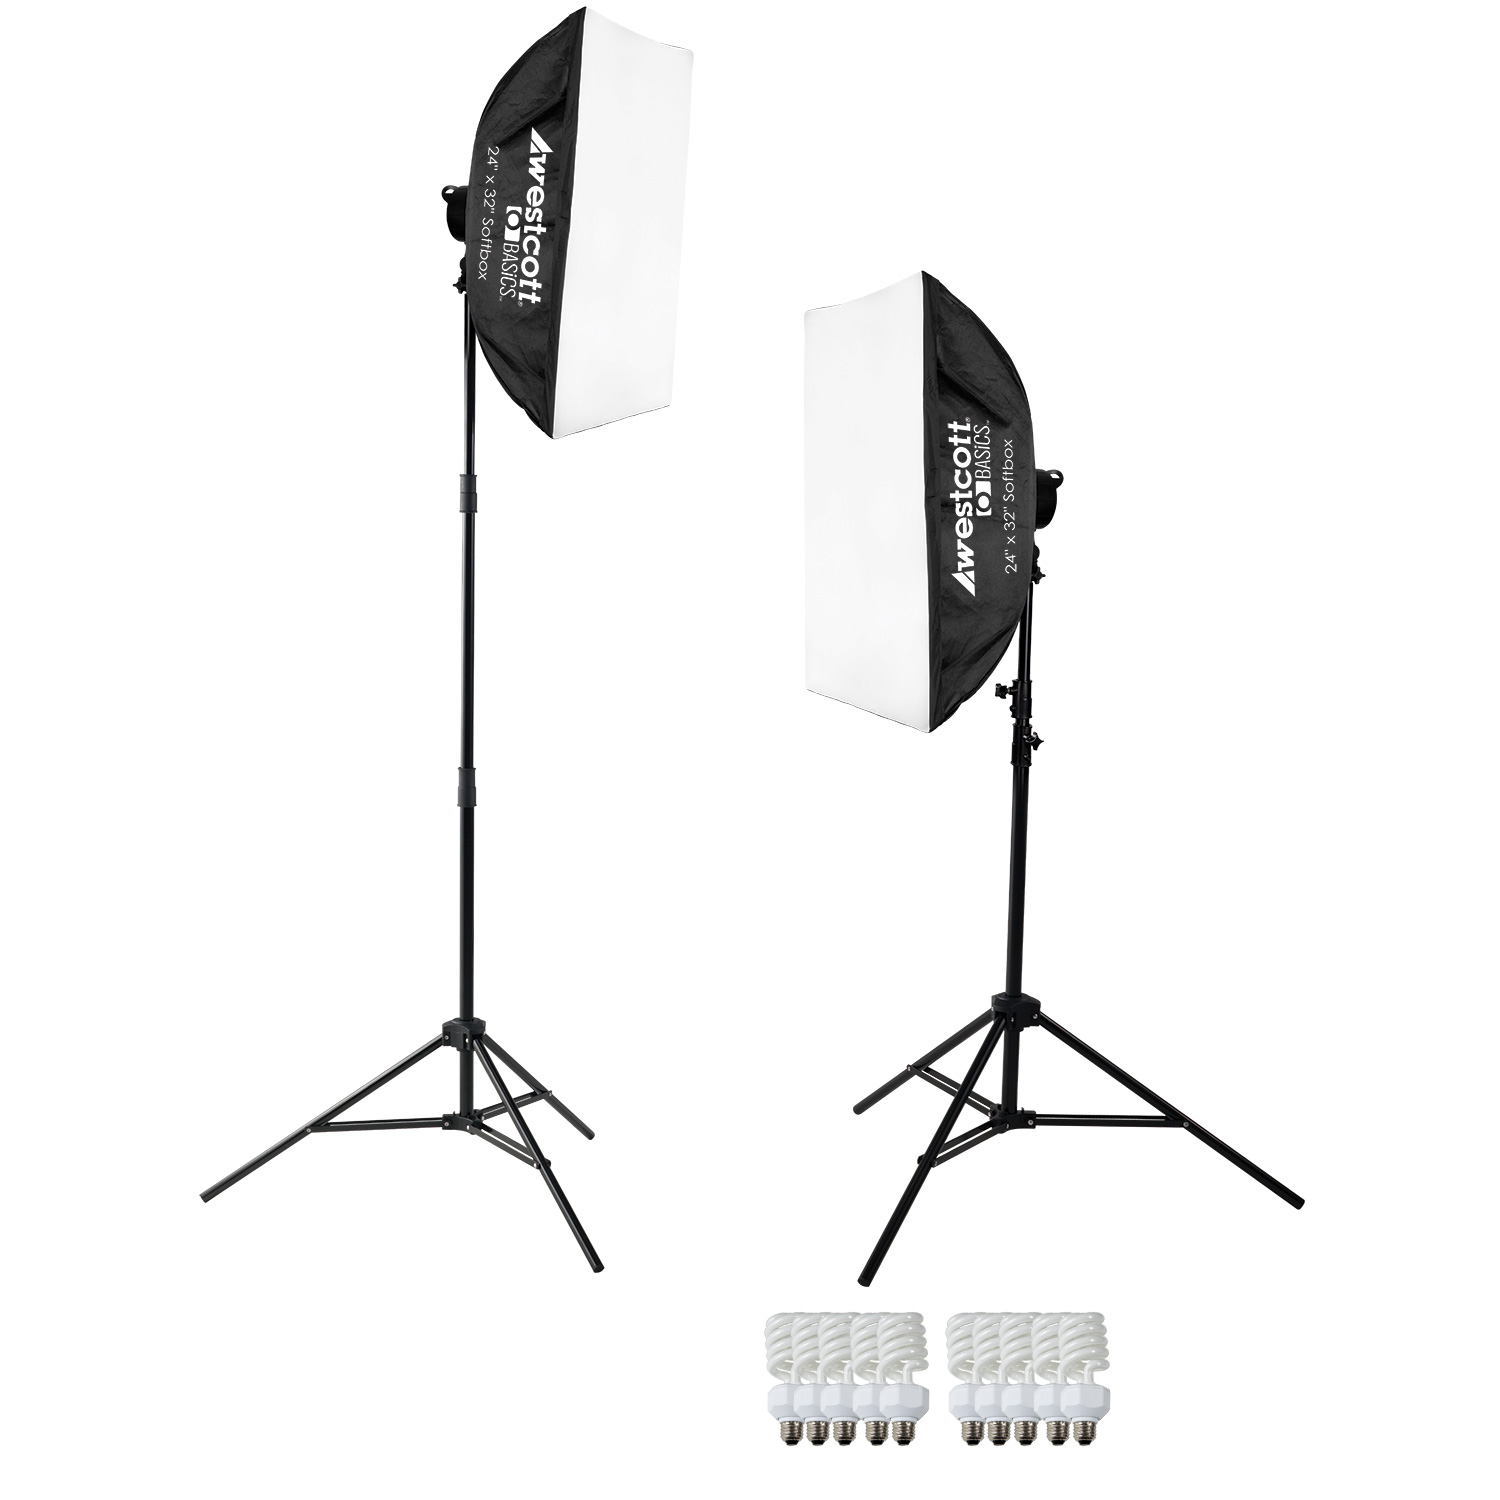 D5 2-Light Softbox Kit with Free Backdrop